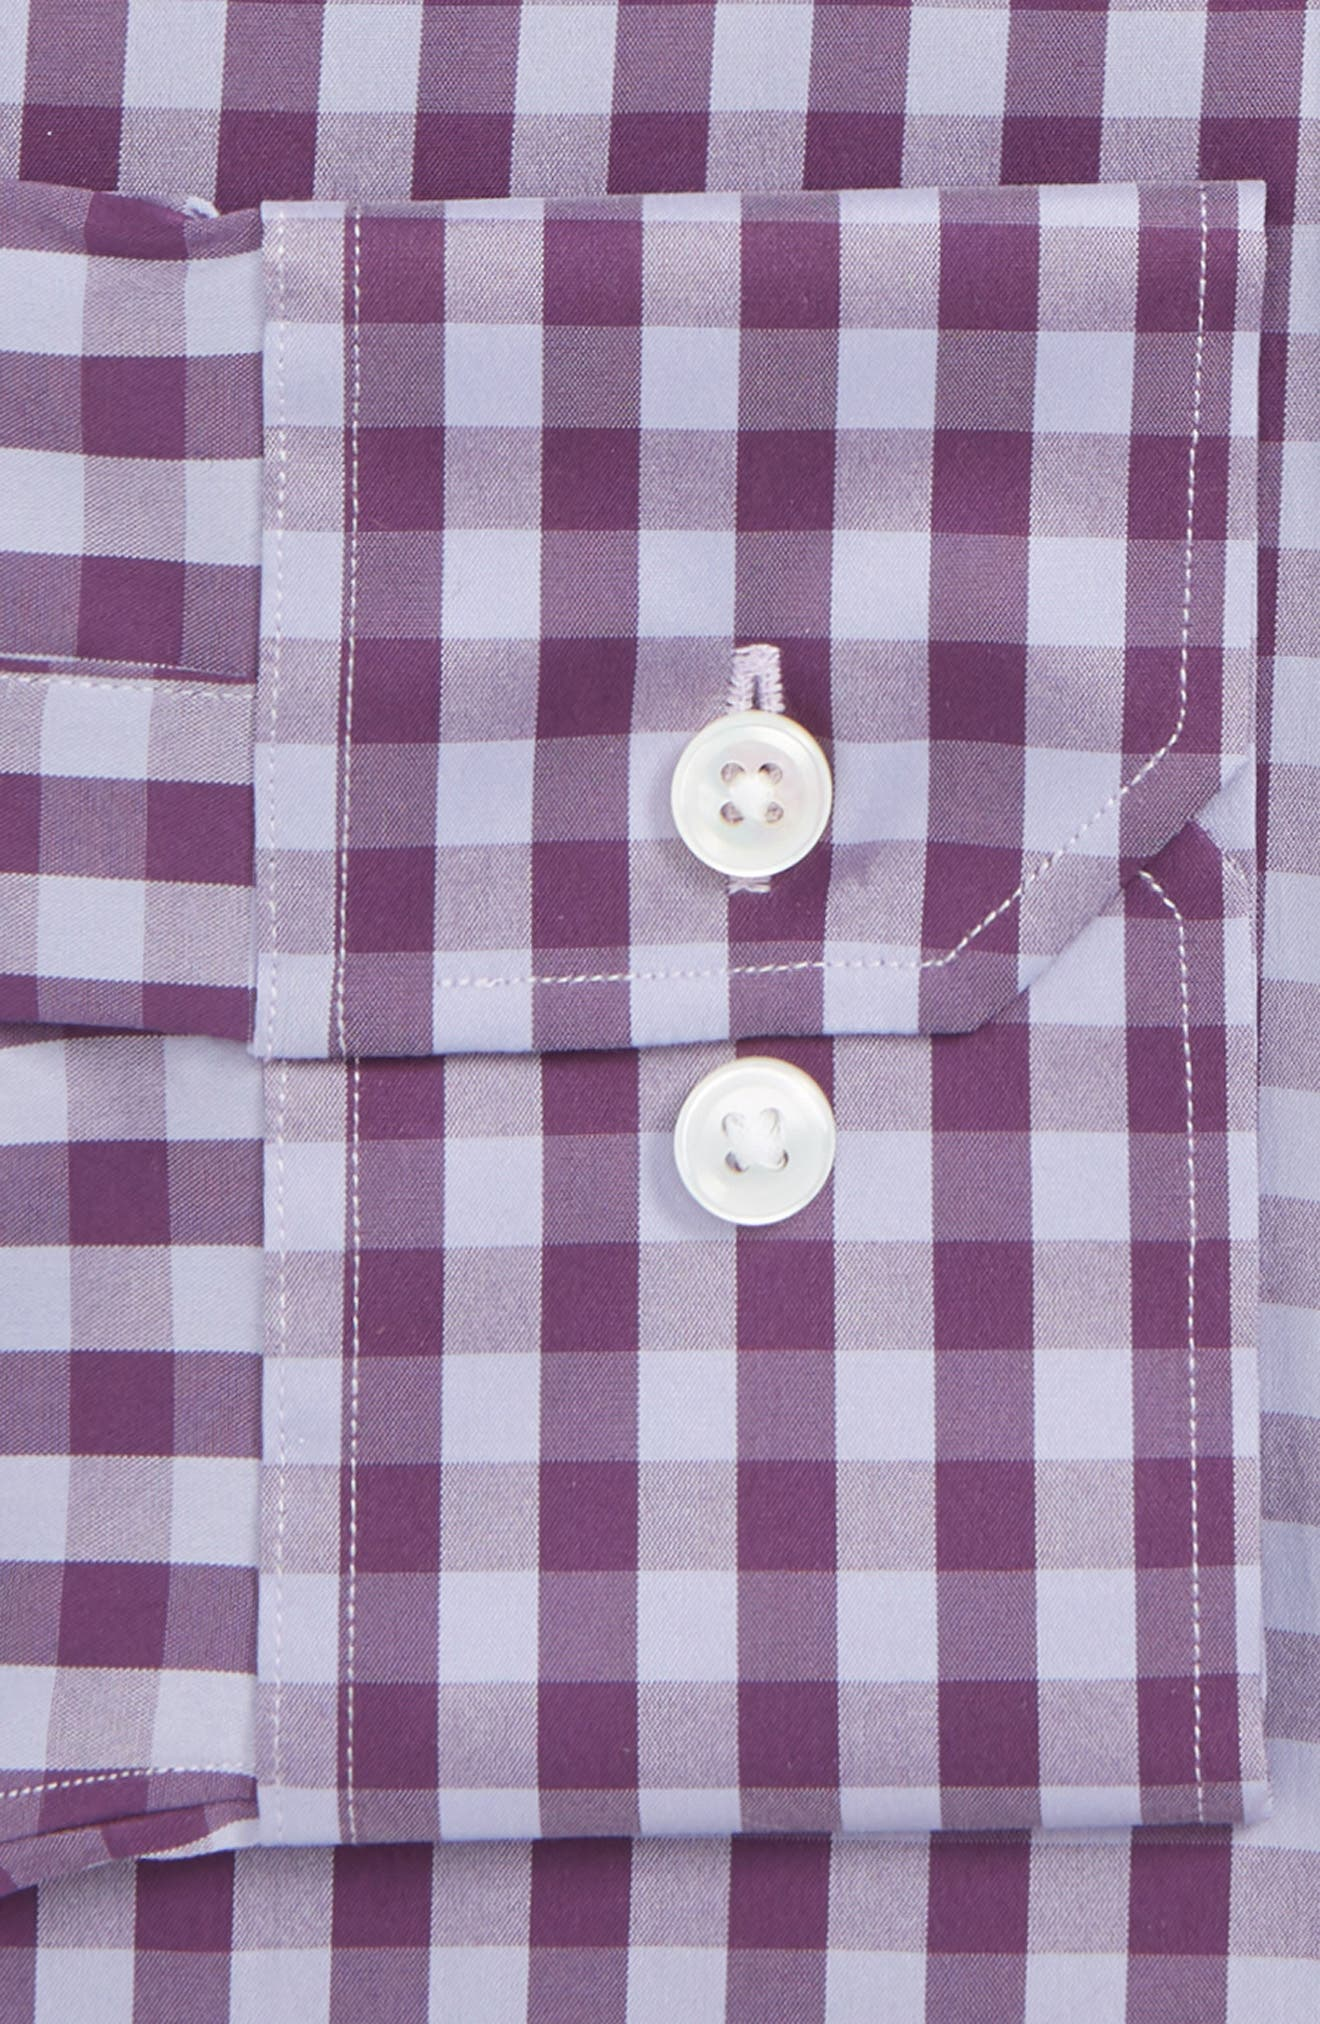 Port Grand Slim Fit Stretch Check Dress Shirt,                             Alternate thumbnail 2, color,                             GRAPESEED